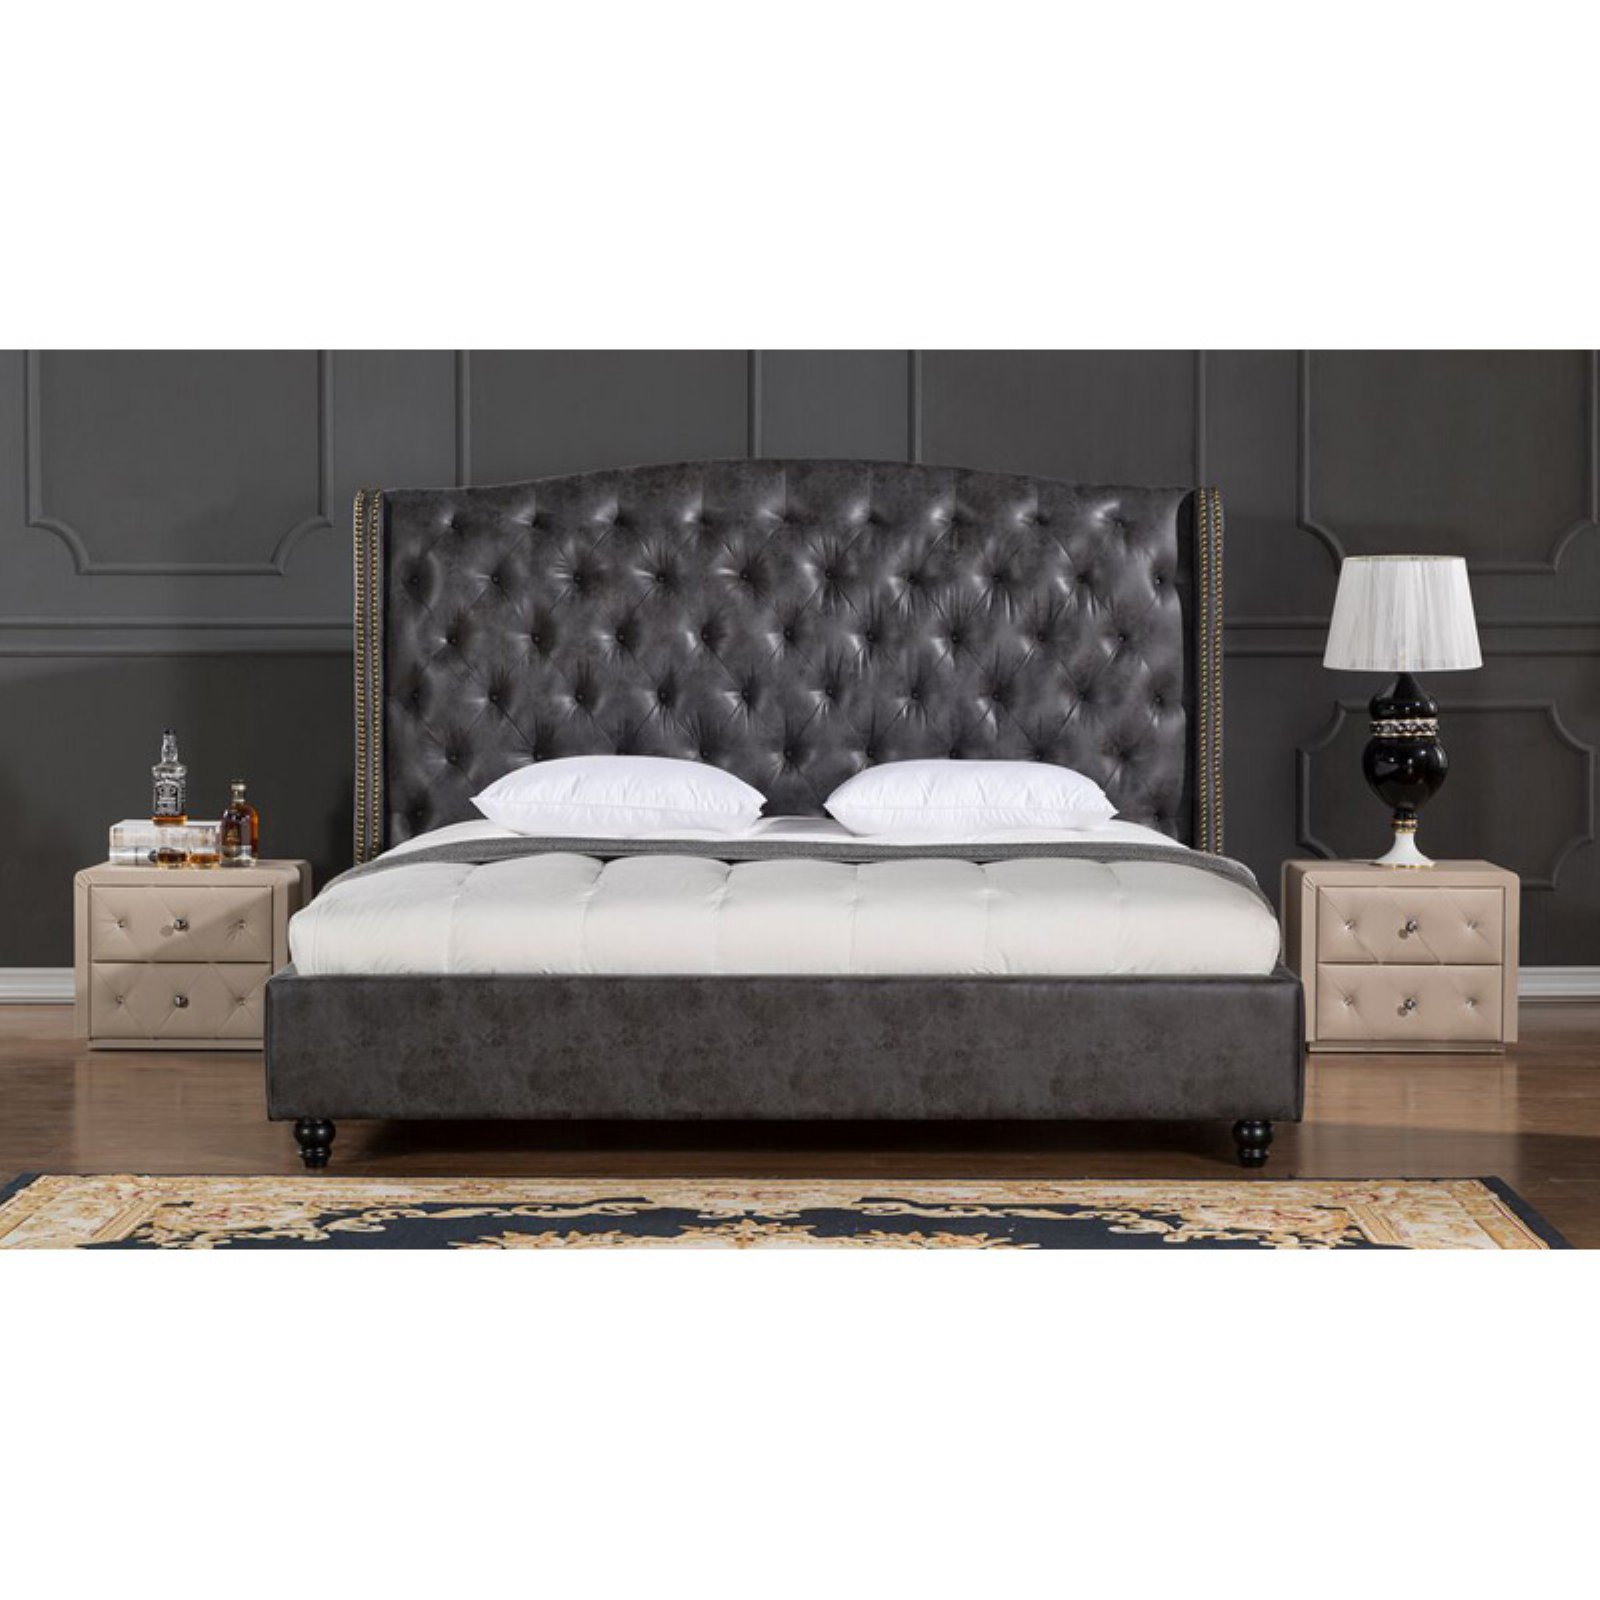 American Eagle Furniture Drake Platform Bed with Tufted Headboard